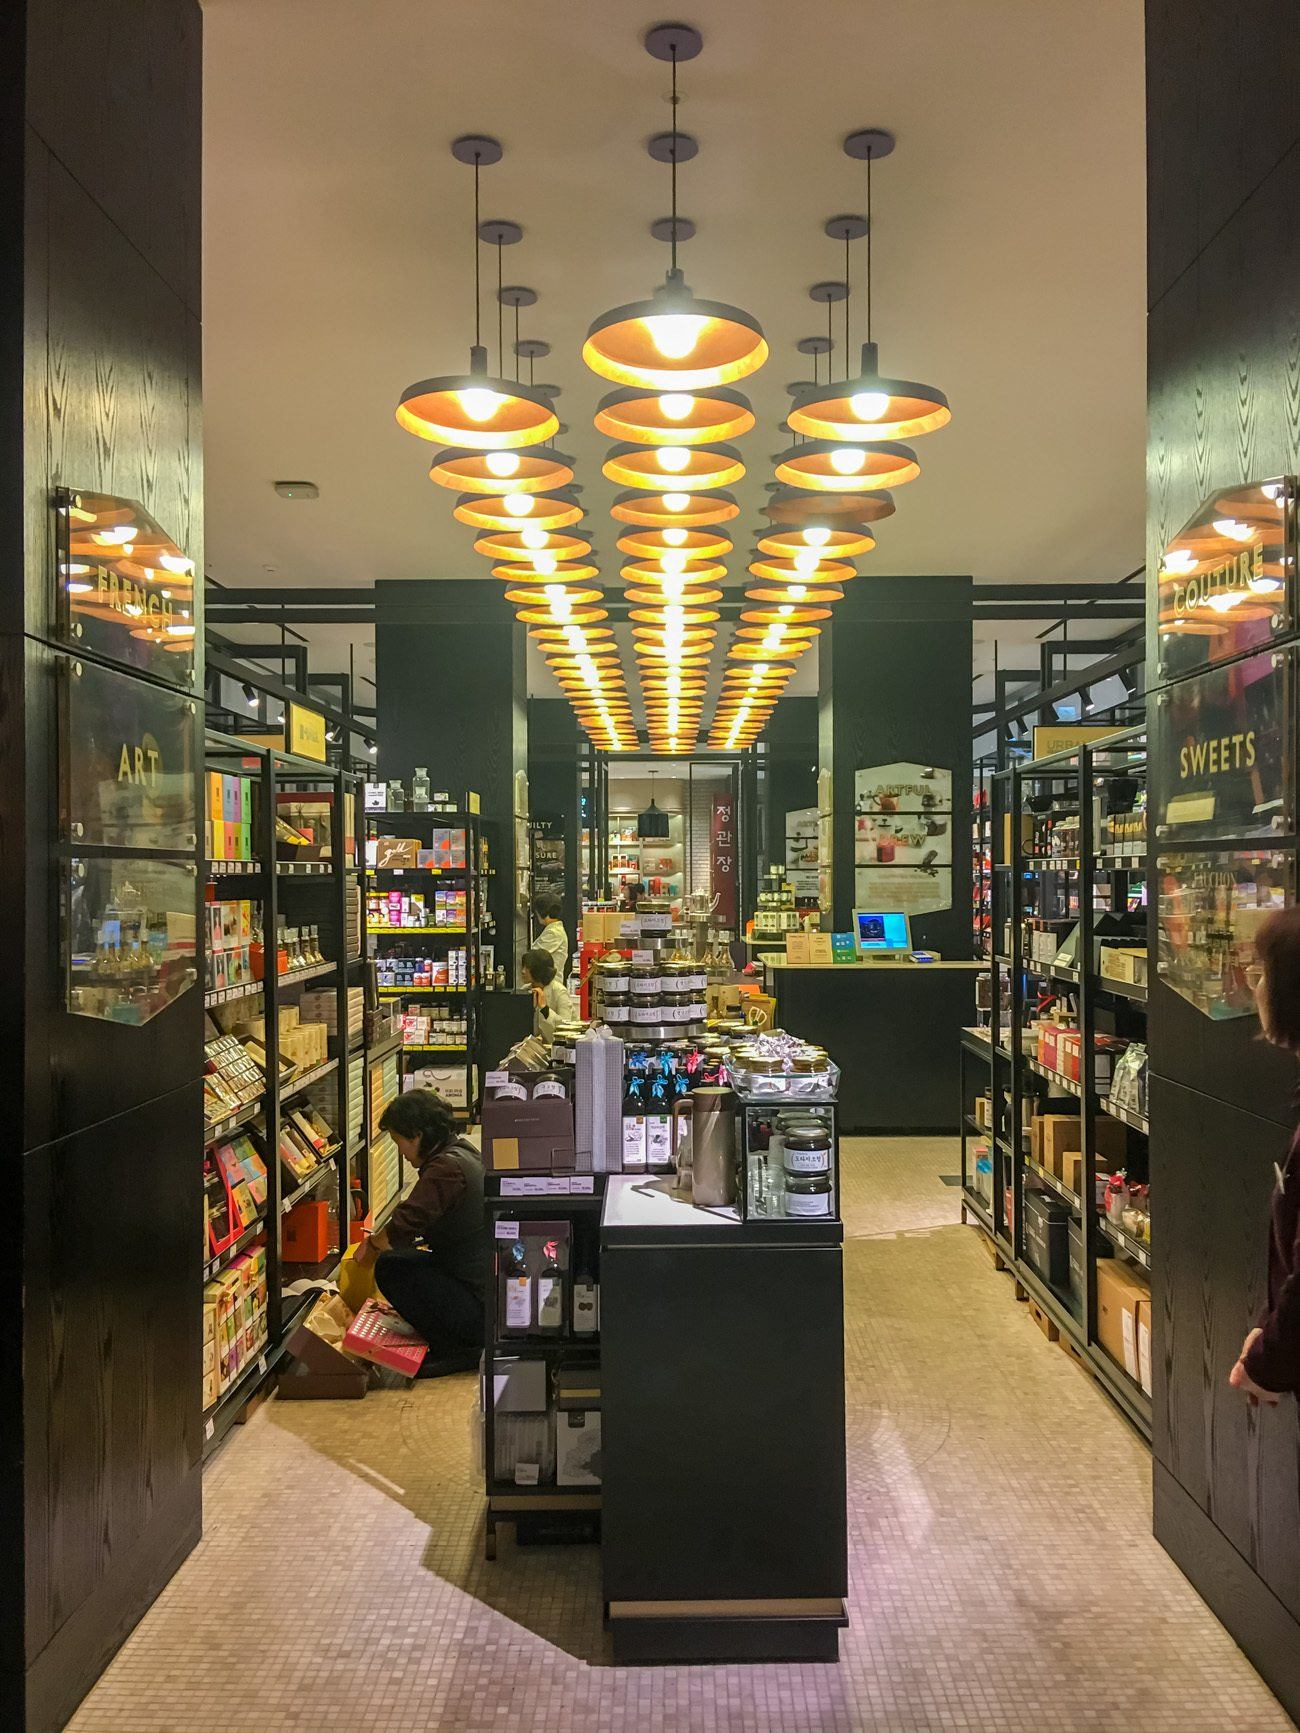 The Shinsegae food hall in Seoul is a great place to buy souvenirs of Korean teas, herbs and even some French gourmet favorites.